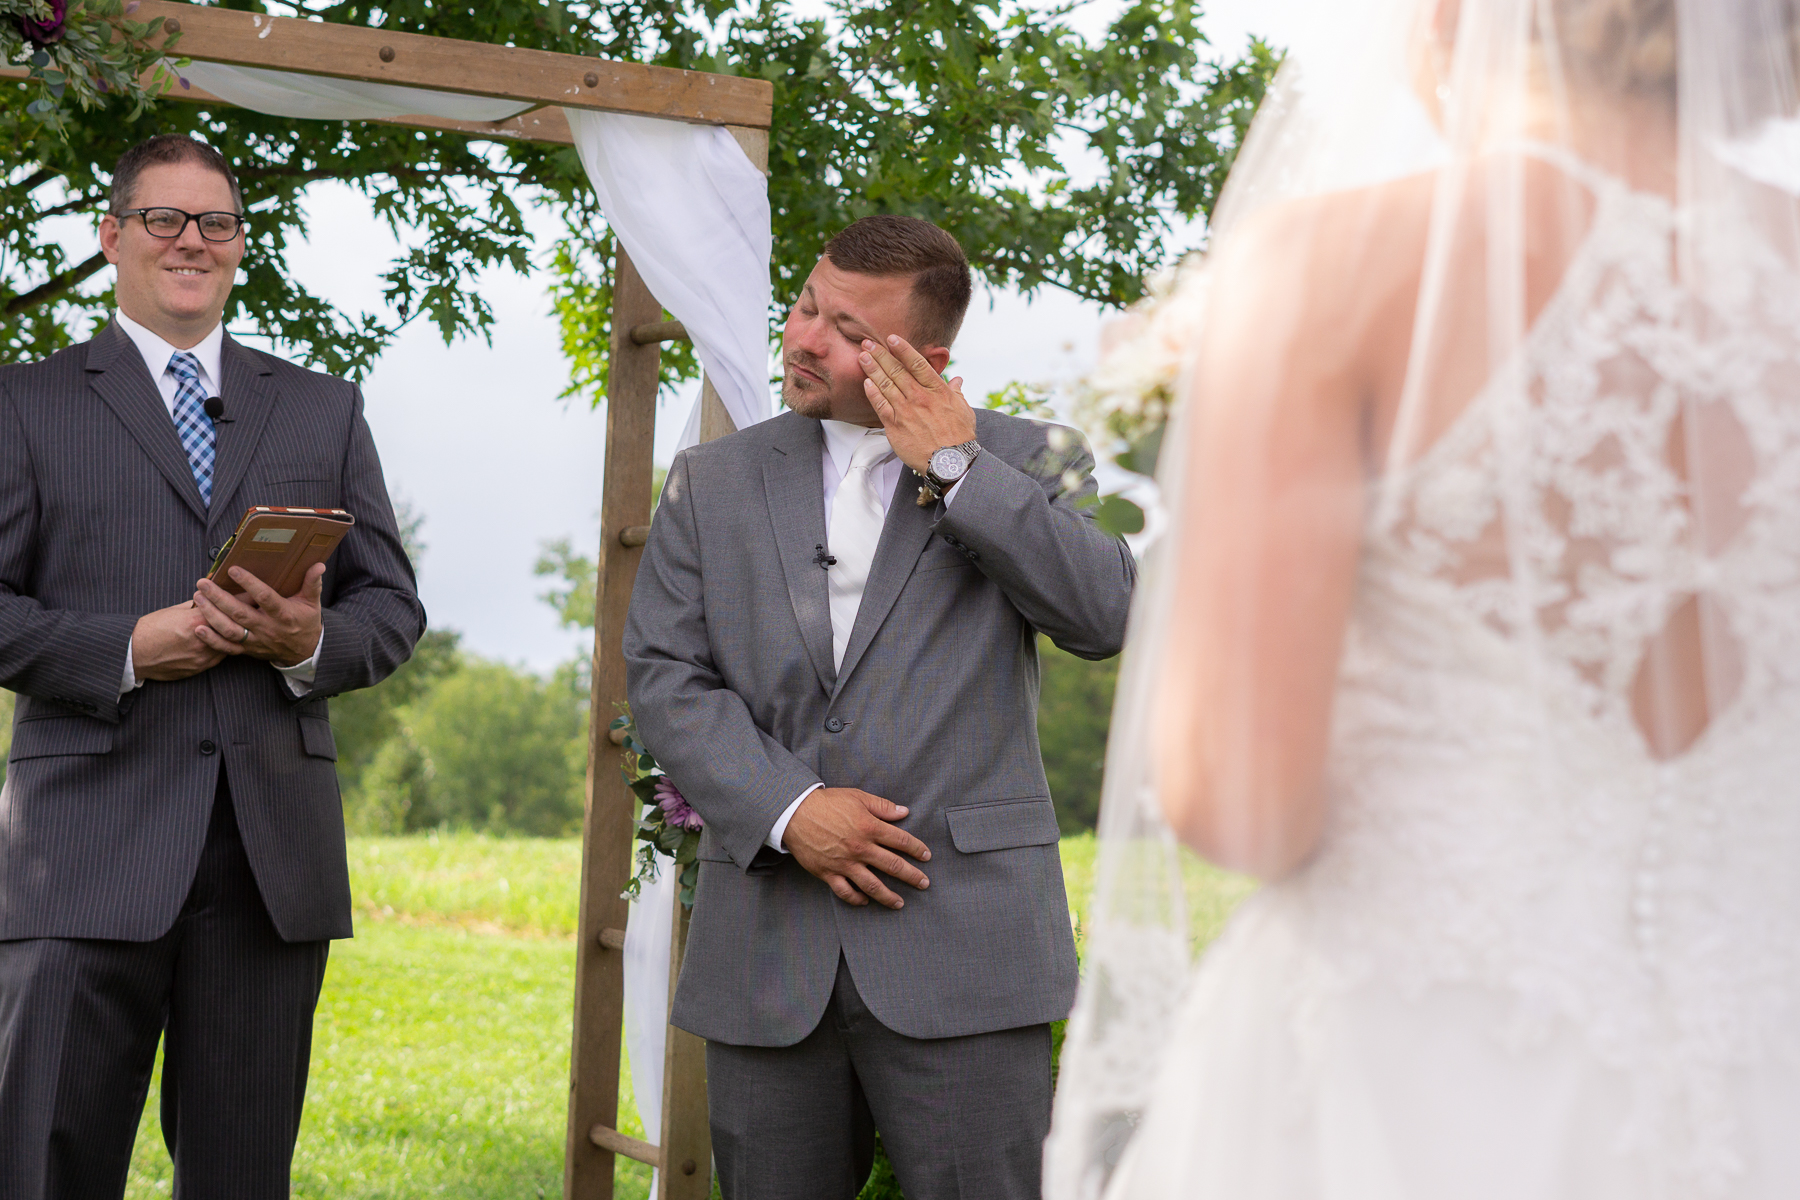 Groom reacting to seeing his beautiful bride for the first time while walking down the aisle